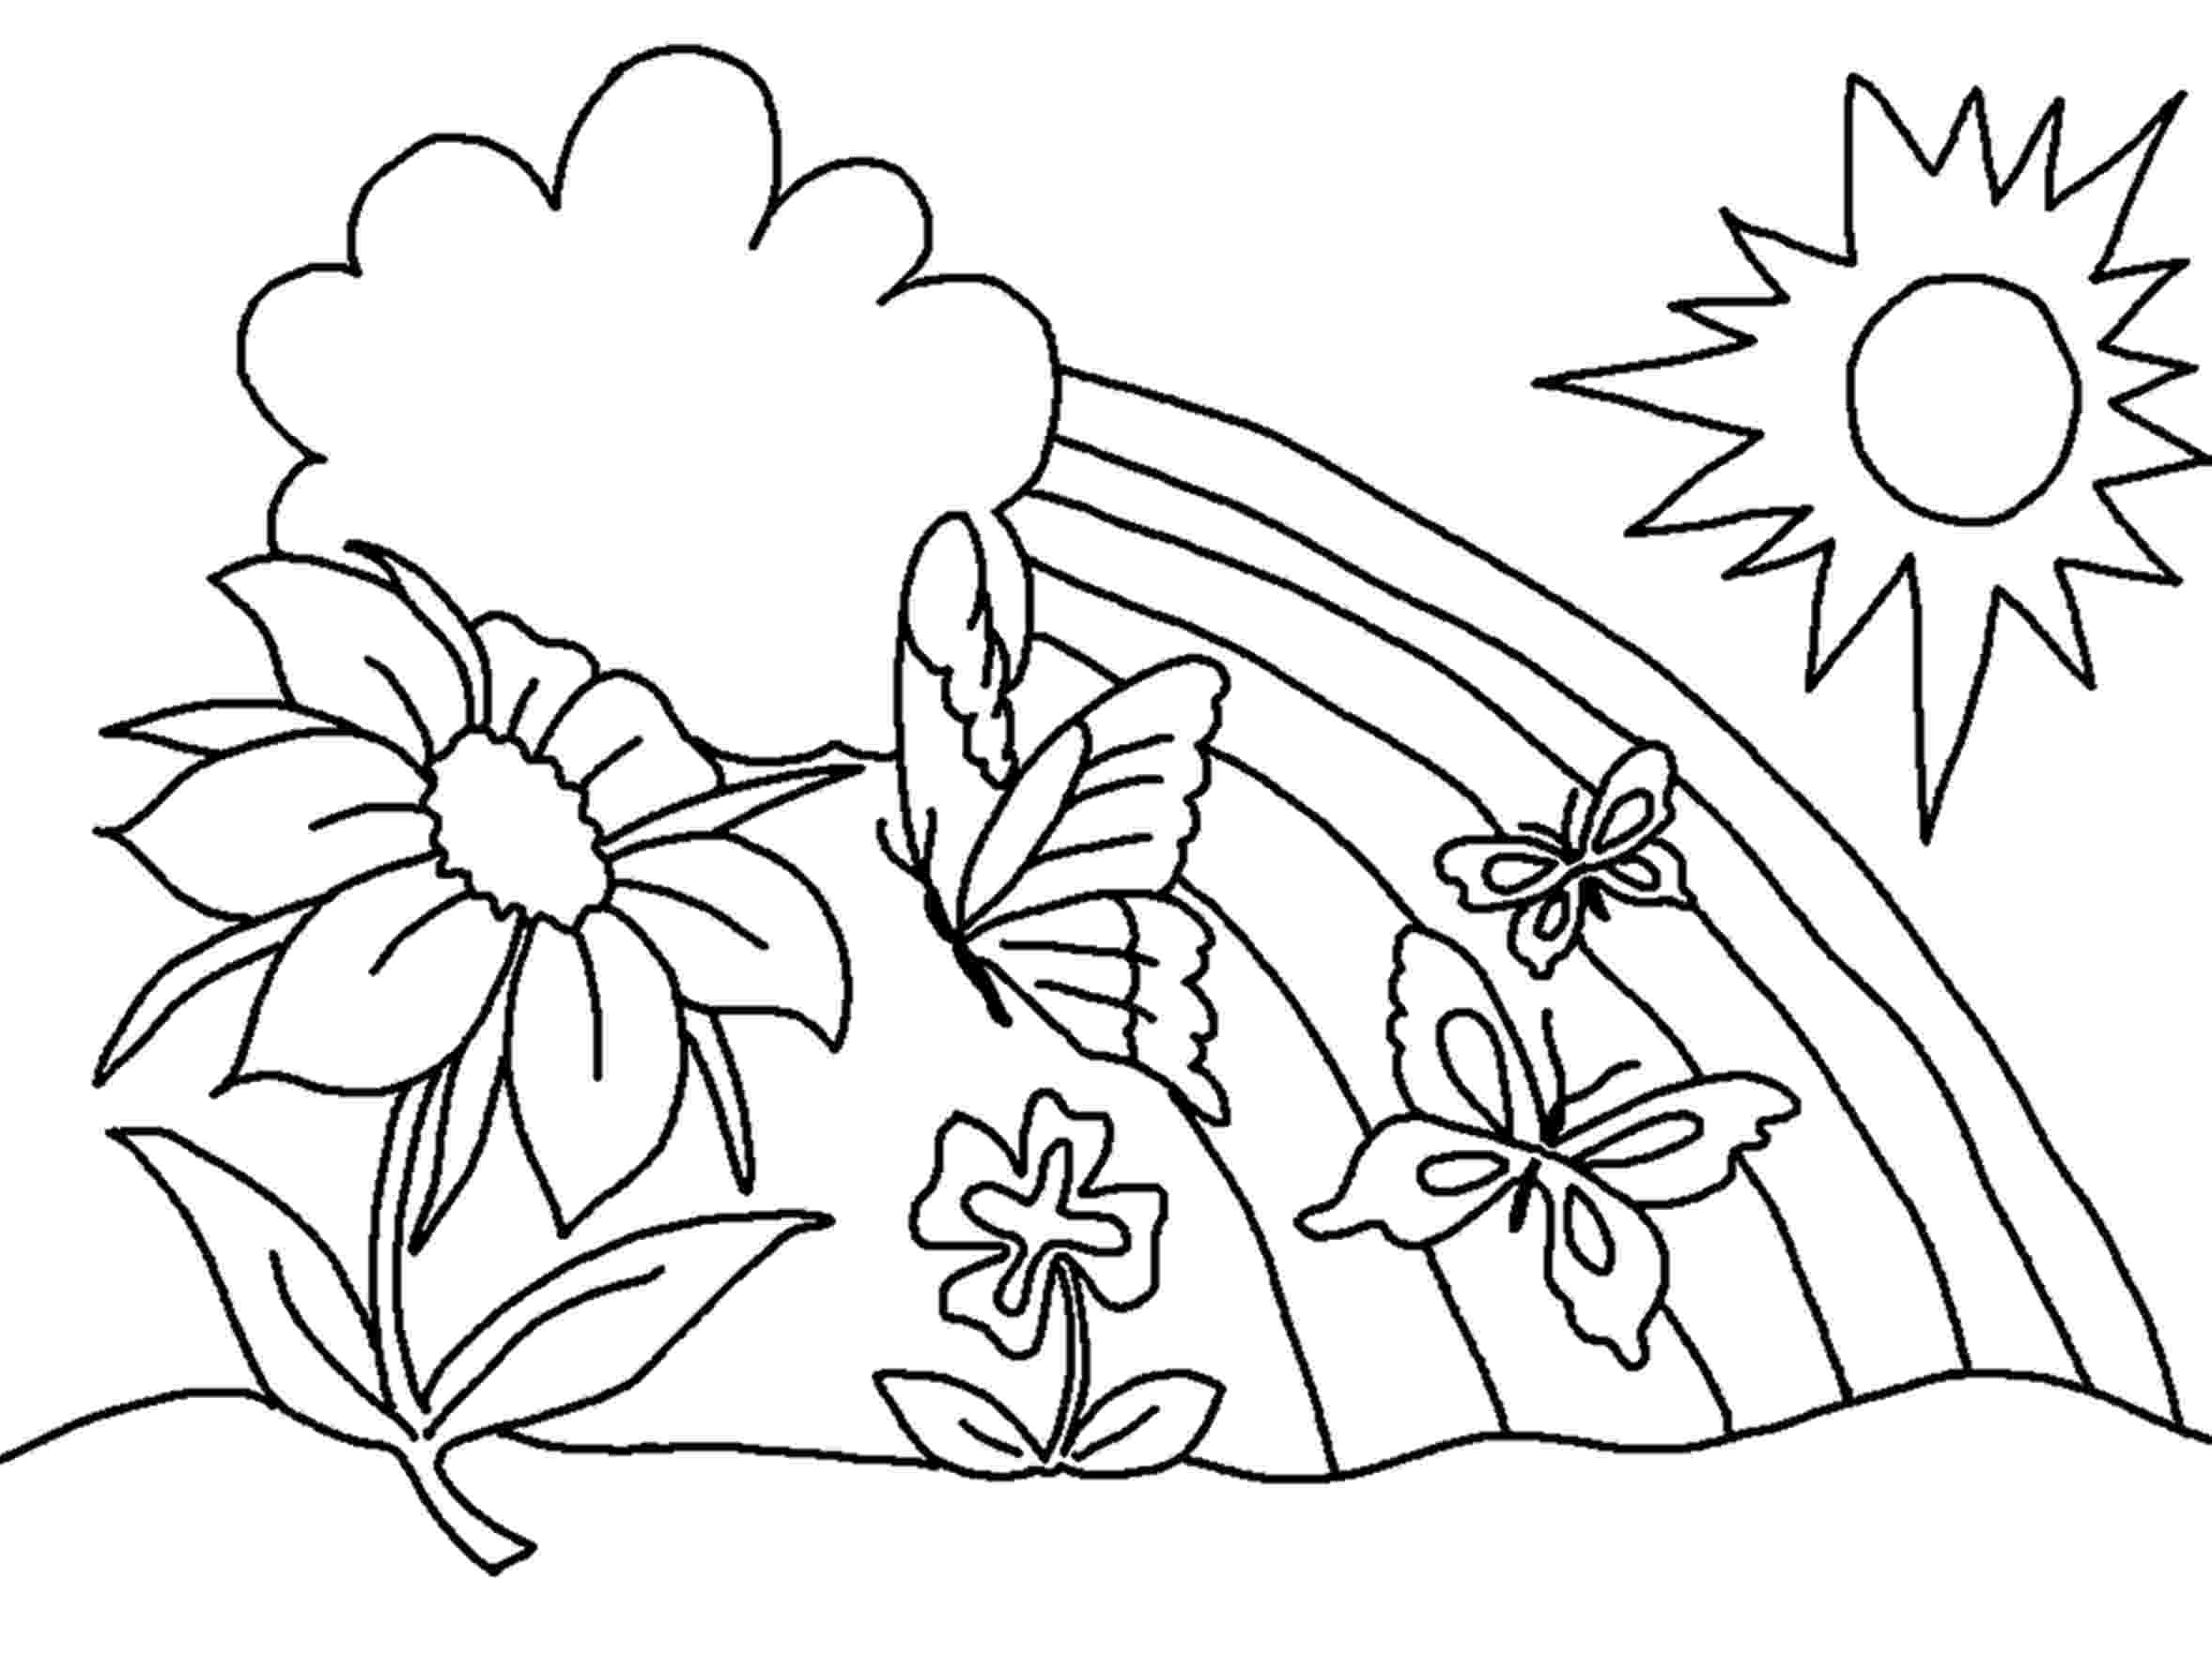 flowers coloring pages printable summer flowers printable coloring pages free large images flowers printable pages coloring